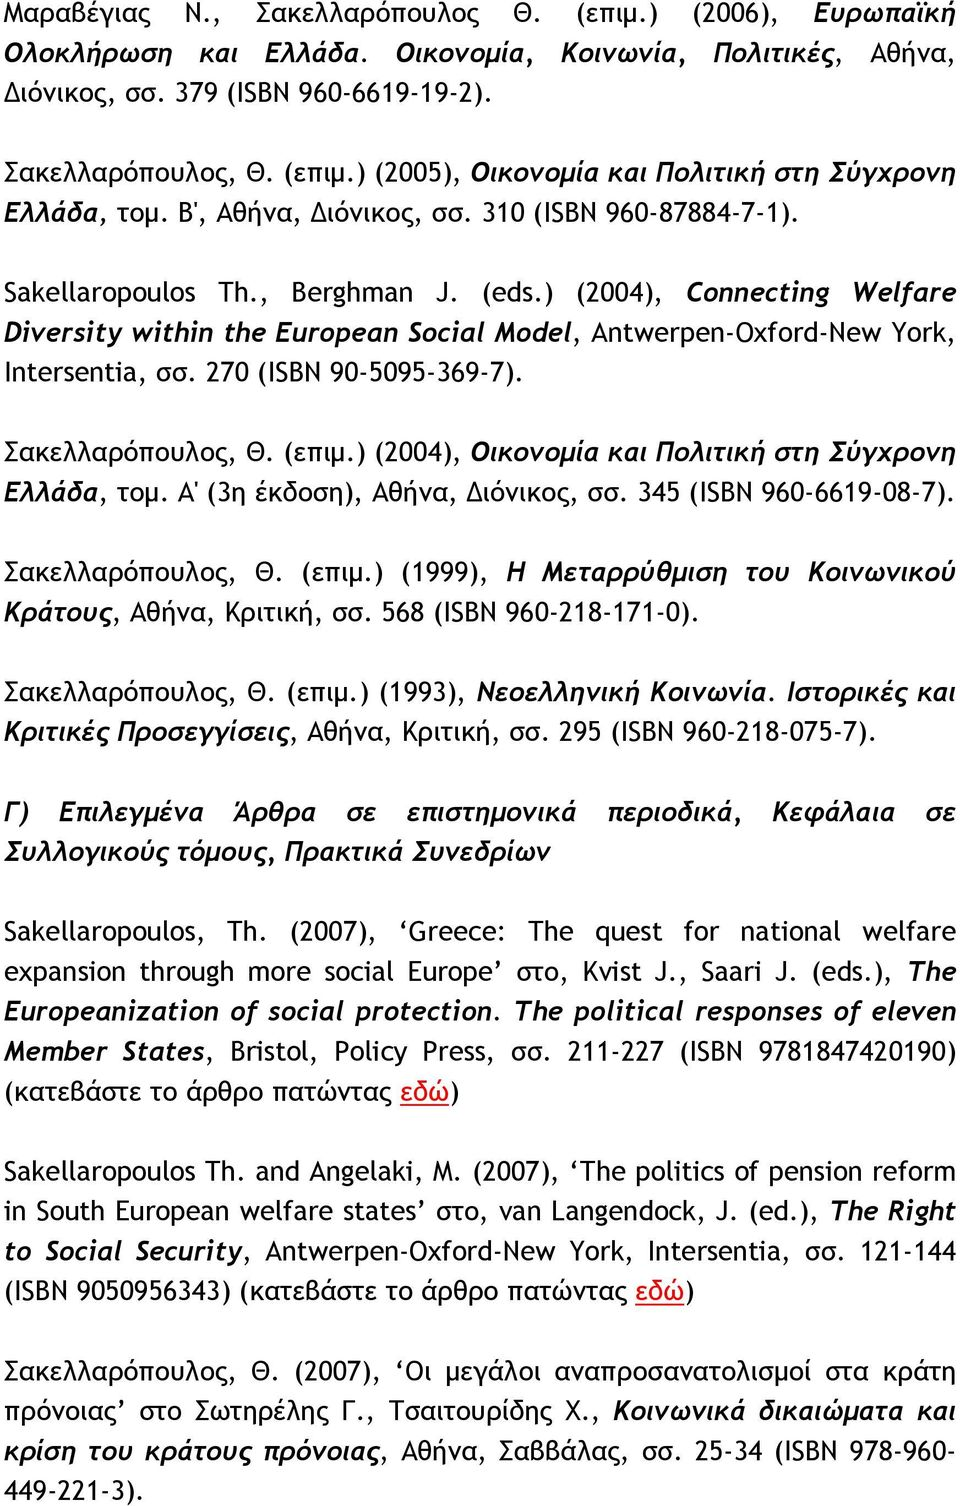 ) (2004), Connecting Welfare Diversity within the European Social Model, Antwerpen-Oxford-New York, Intersentia, σσ. 270 (ISBN 90-5095-369-7). Σακελλαρόπουλος, Θ. (επιμ.